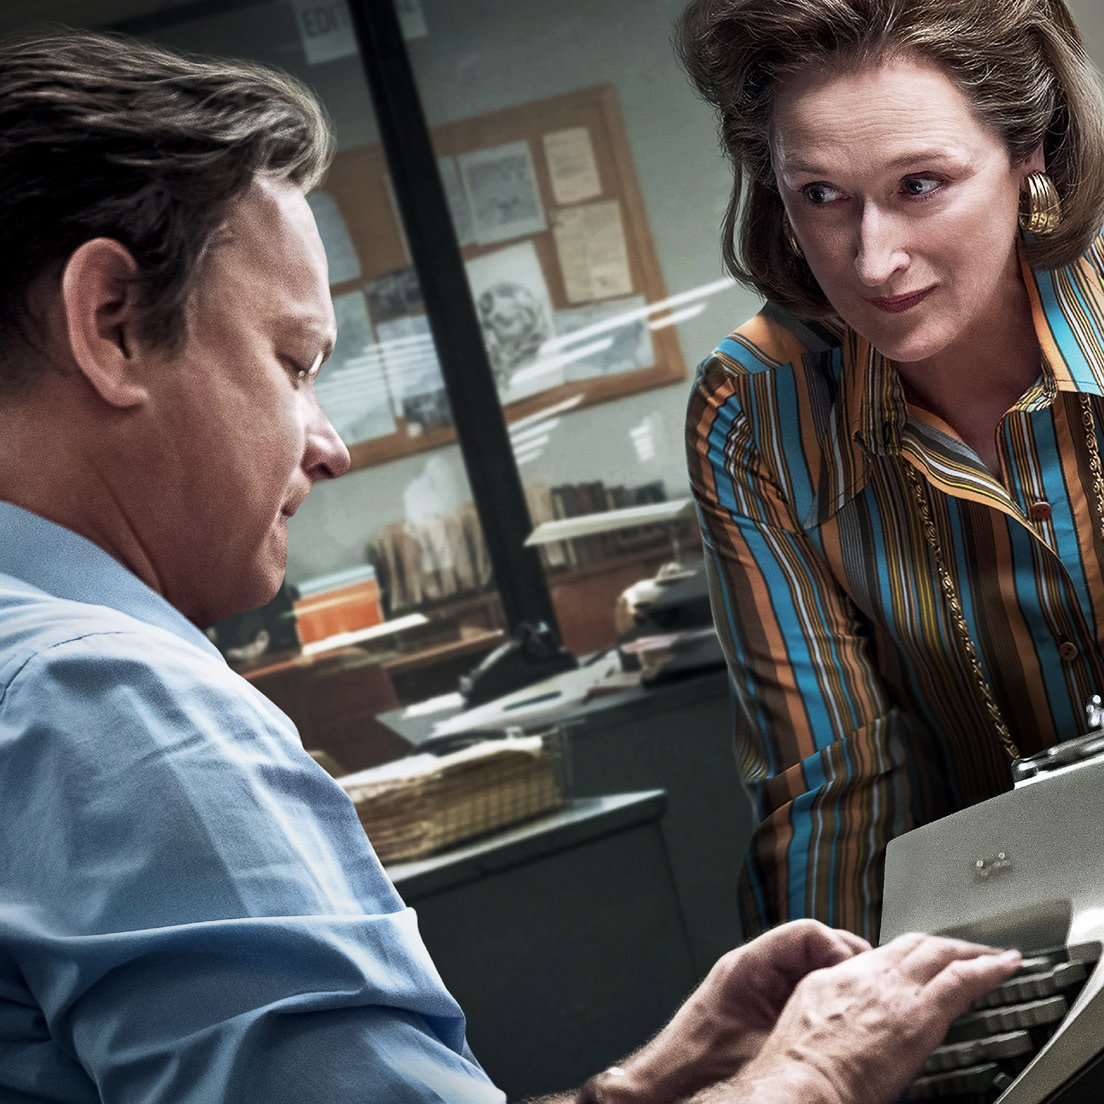 Whats on Appleby: The Post (film)